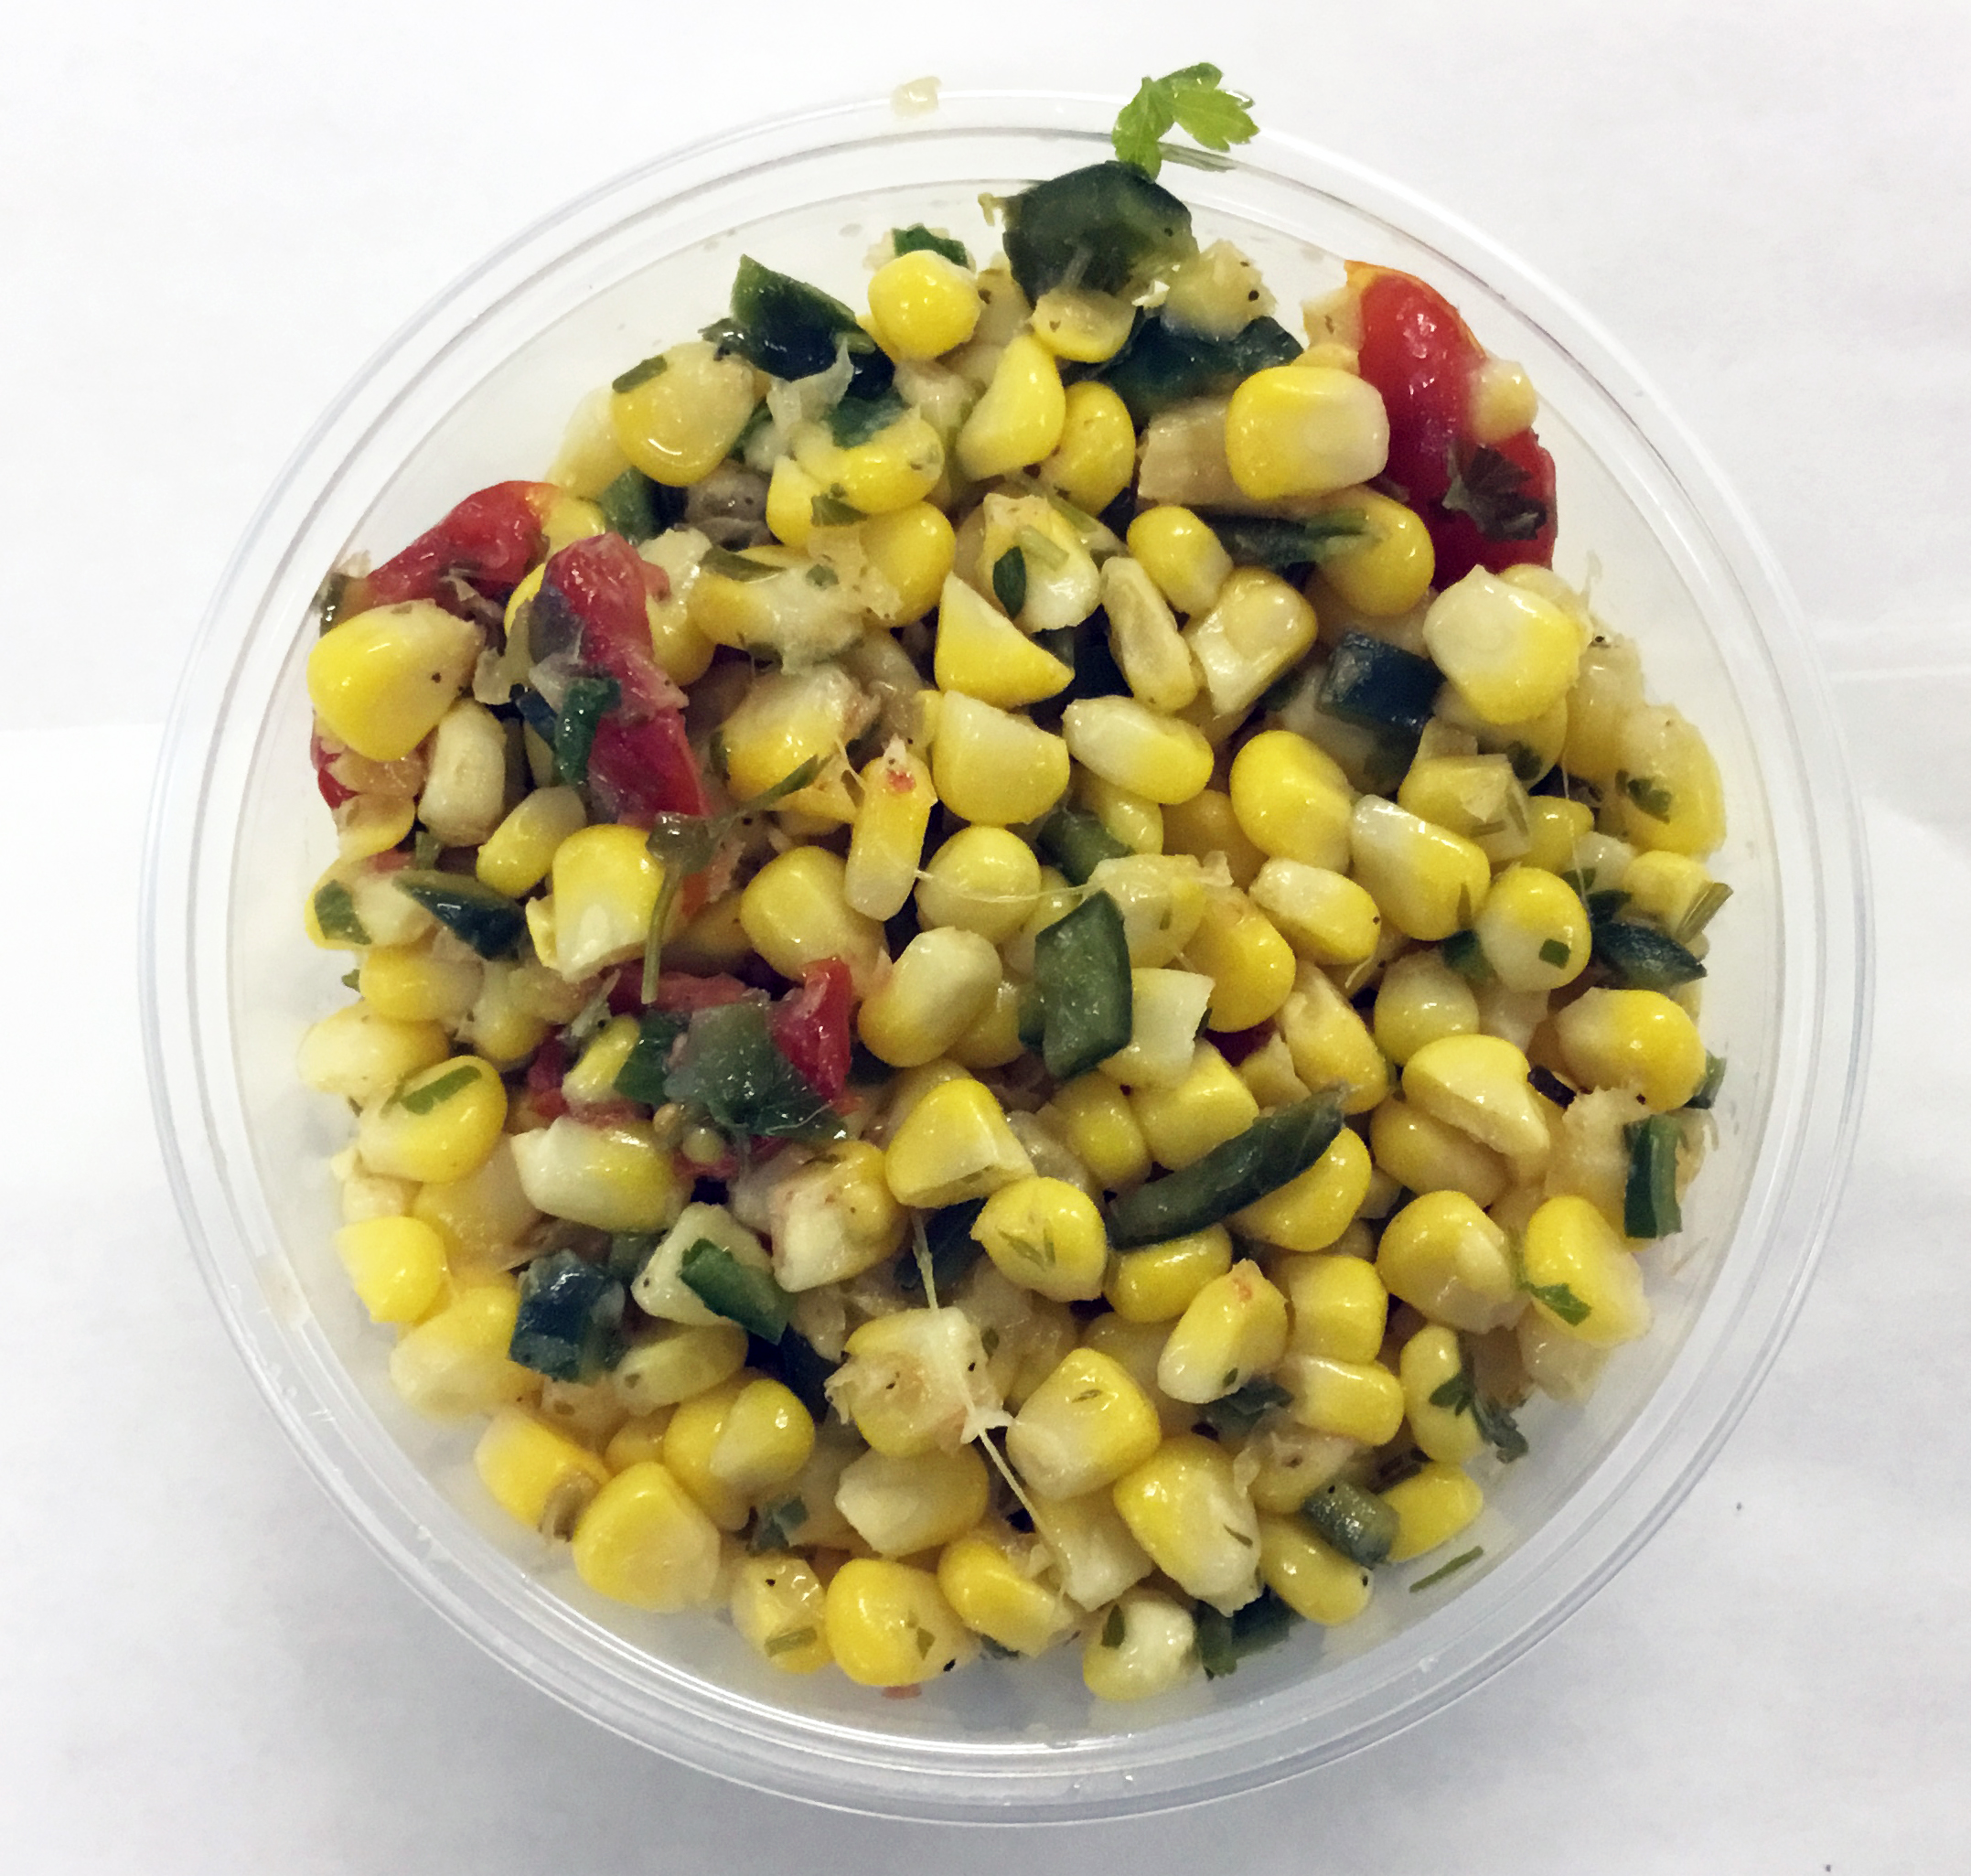 Corn salad with Poblano peppers, cherry tomatoes, parsley and an apple cider vinegar dressing.